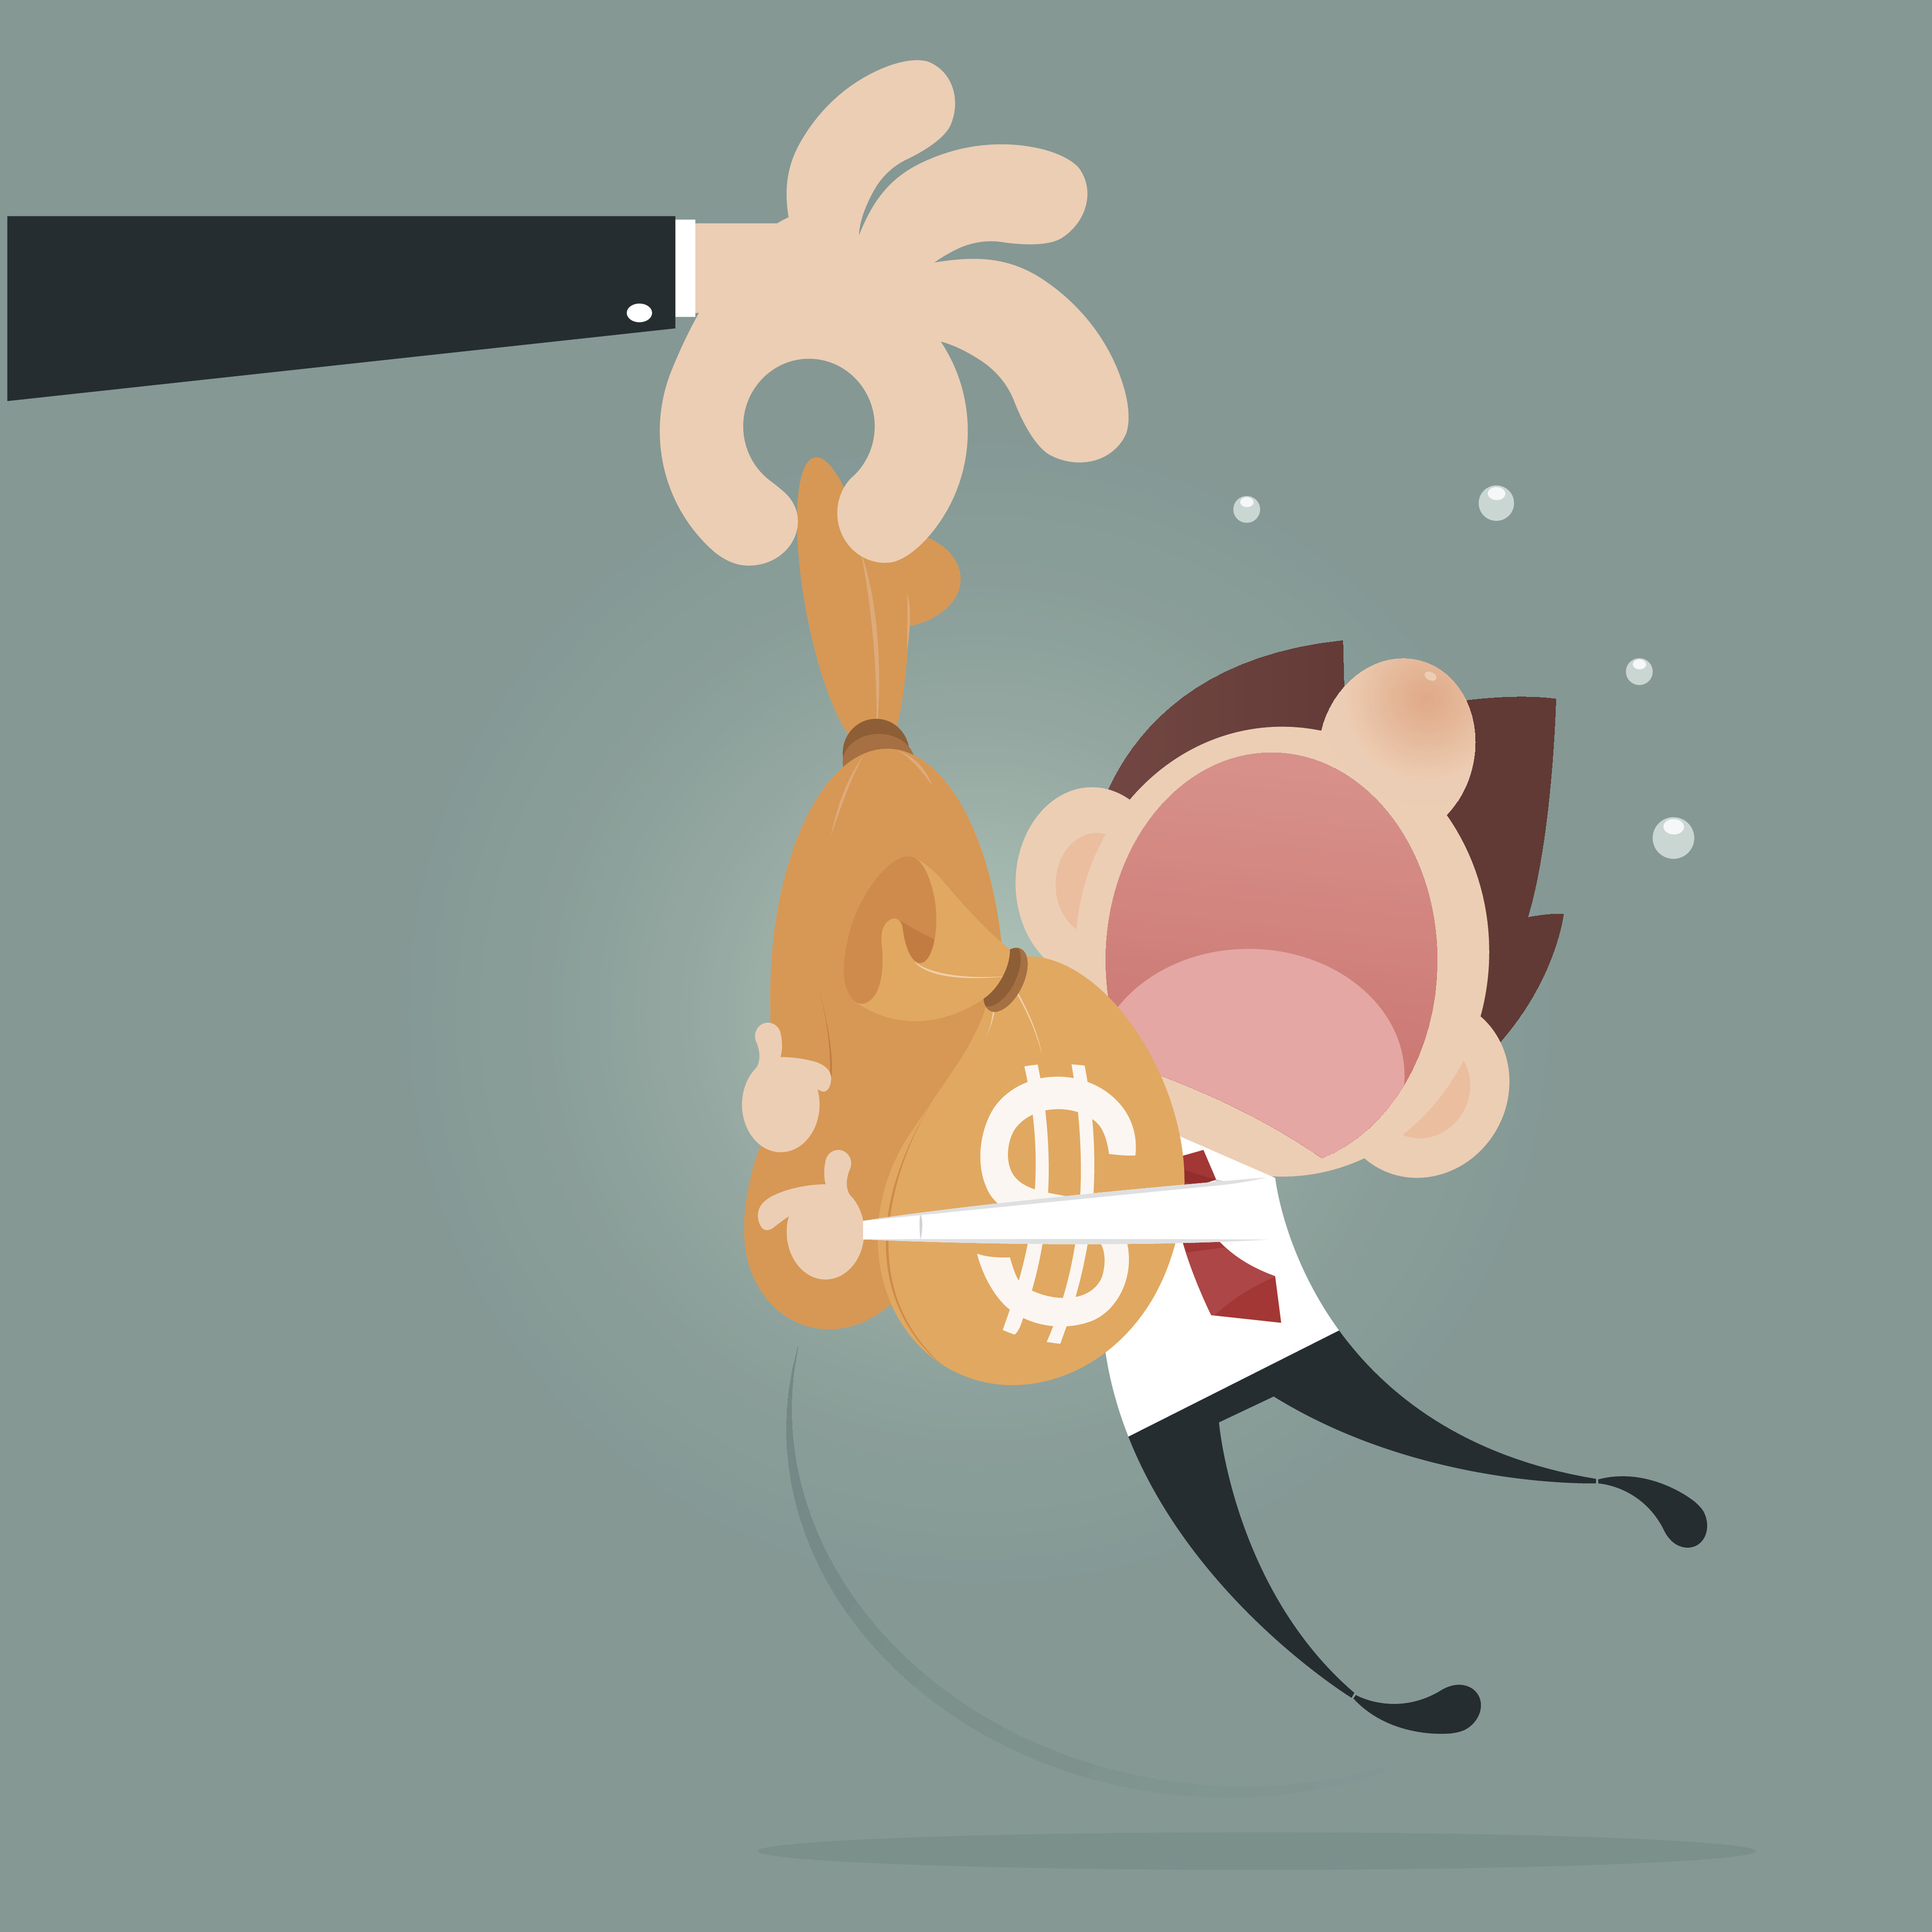 Clawbacks for Executive pay : should Executive variable pay go down as well as up ? - Compensation Insider